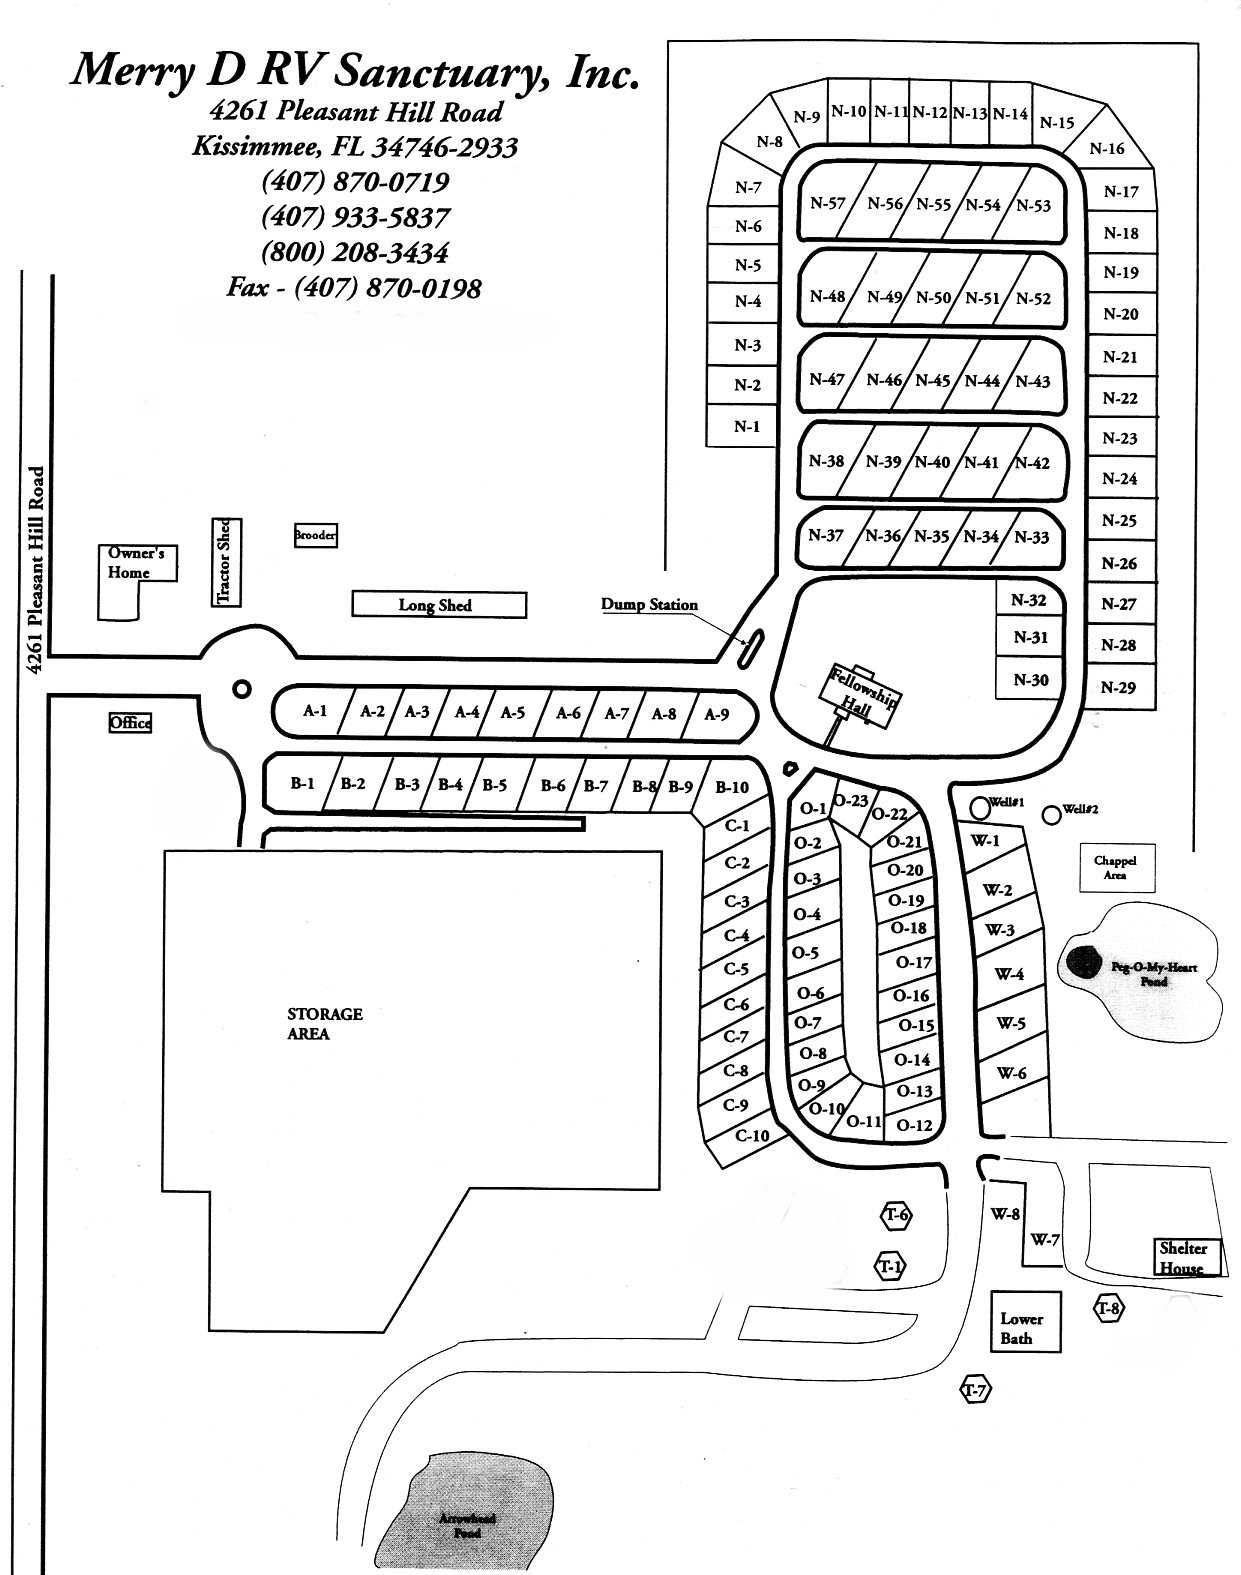 Kissimmee Florida Map.Maps Of The Merry D Rv Sanctuary In Kissimmee Fl